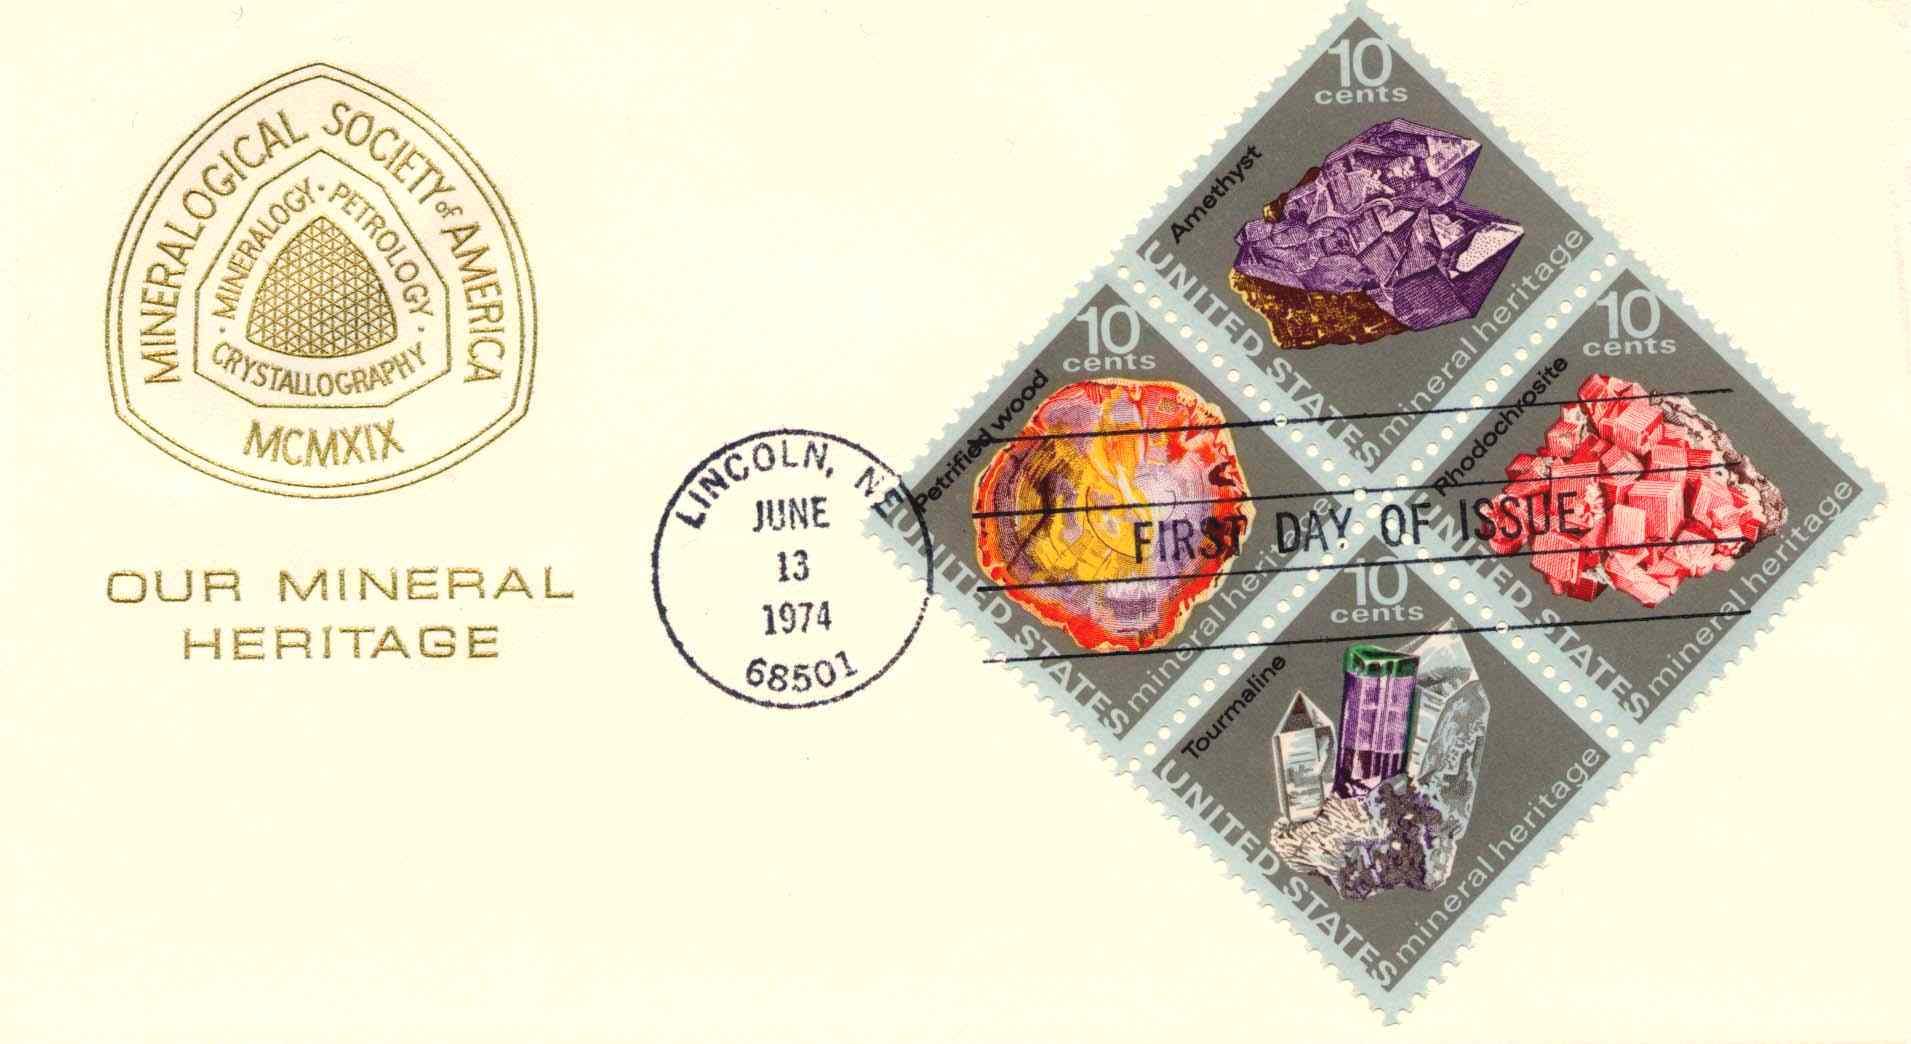 MSA Mineral Heritage First Day Cover